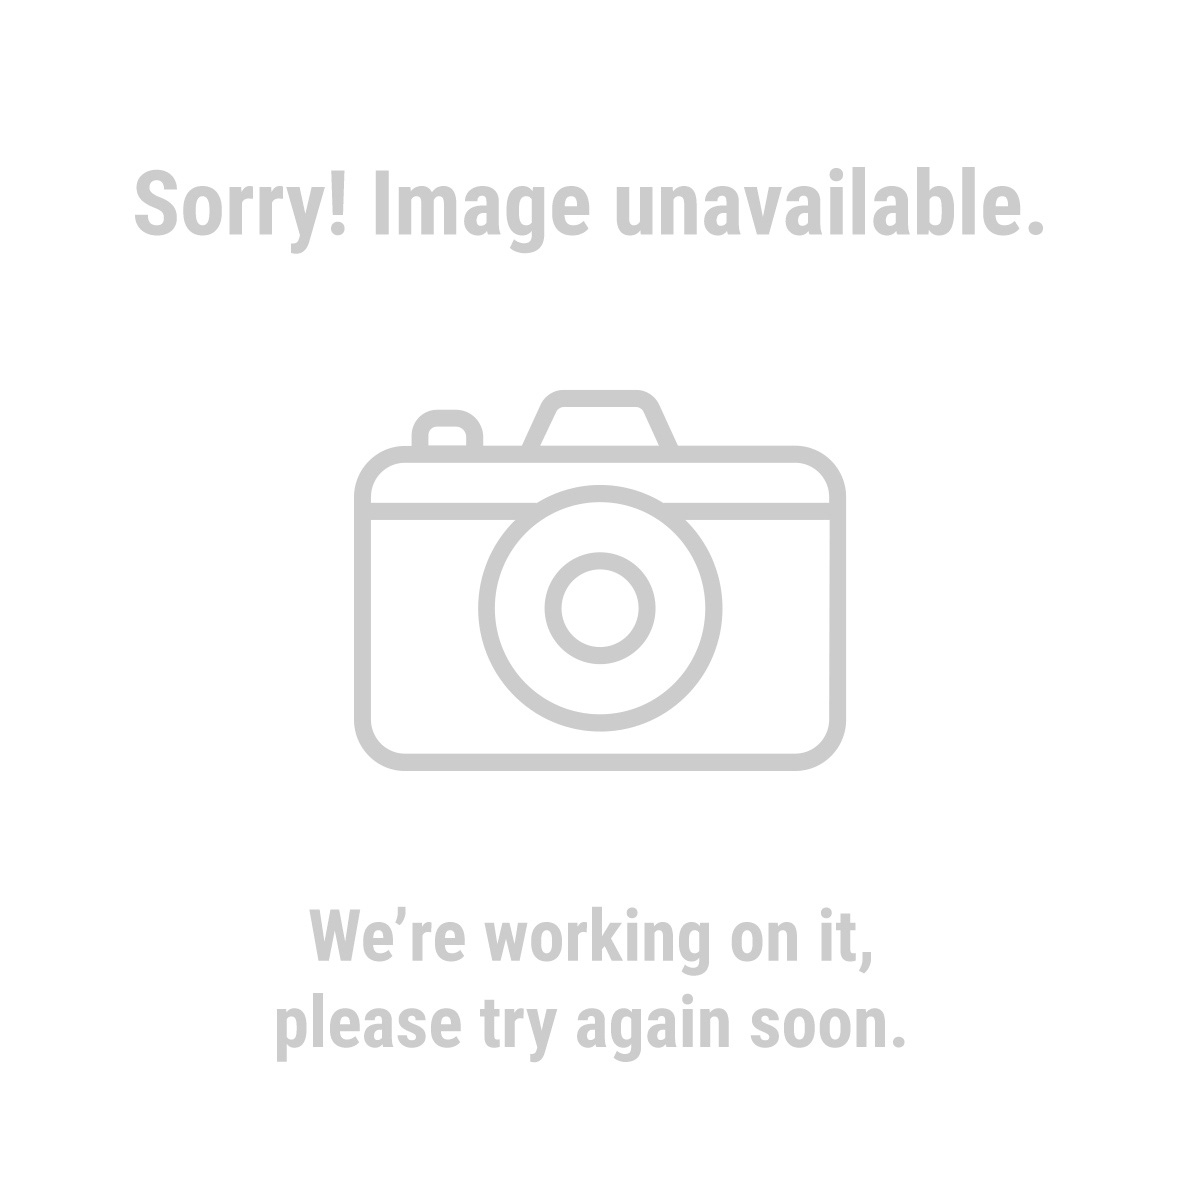 U.S. General 99731 3 Piece Drawer Organizer Set